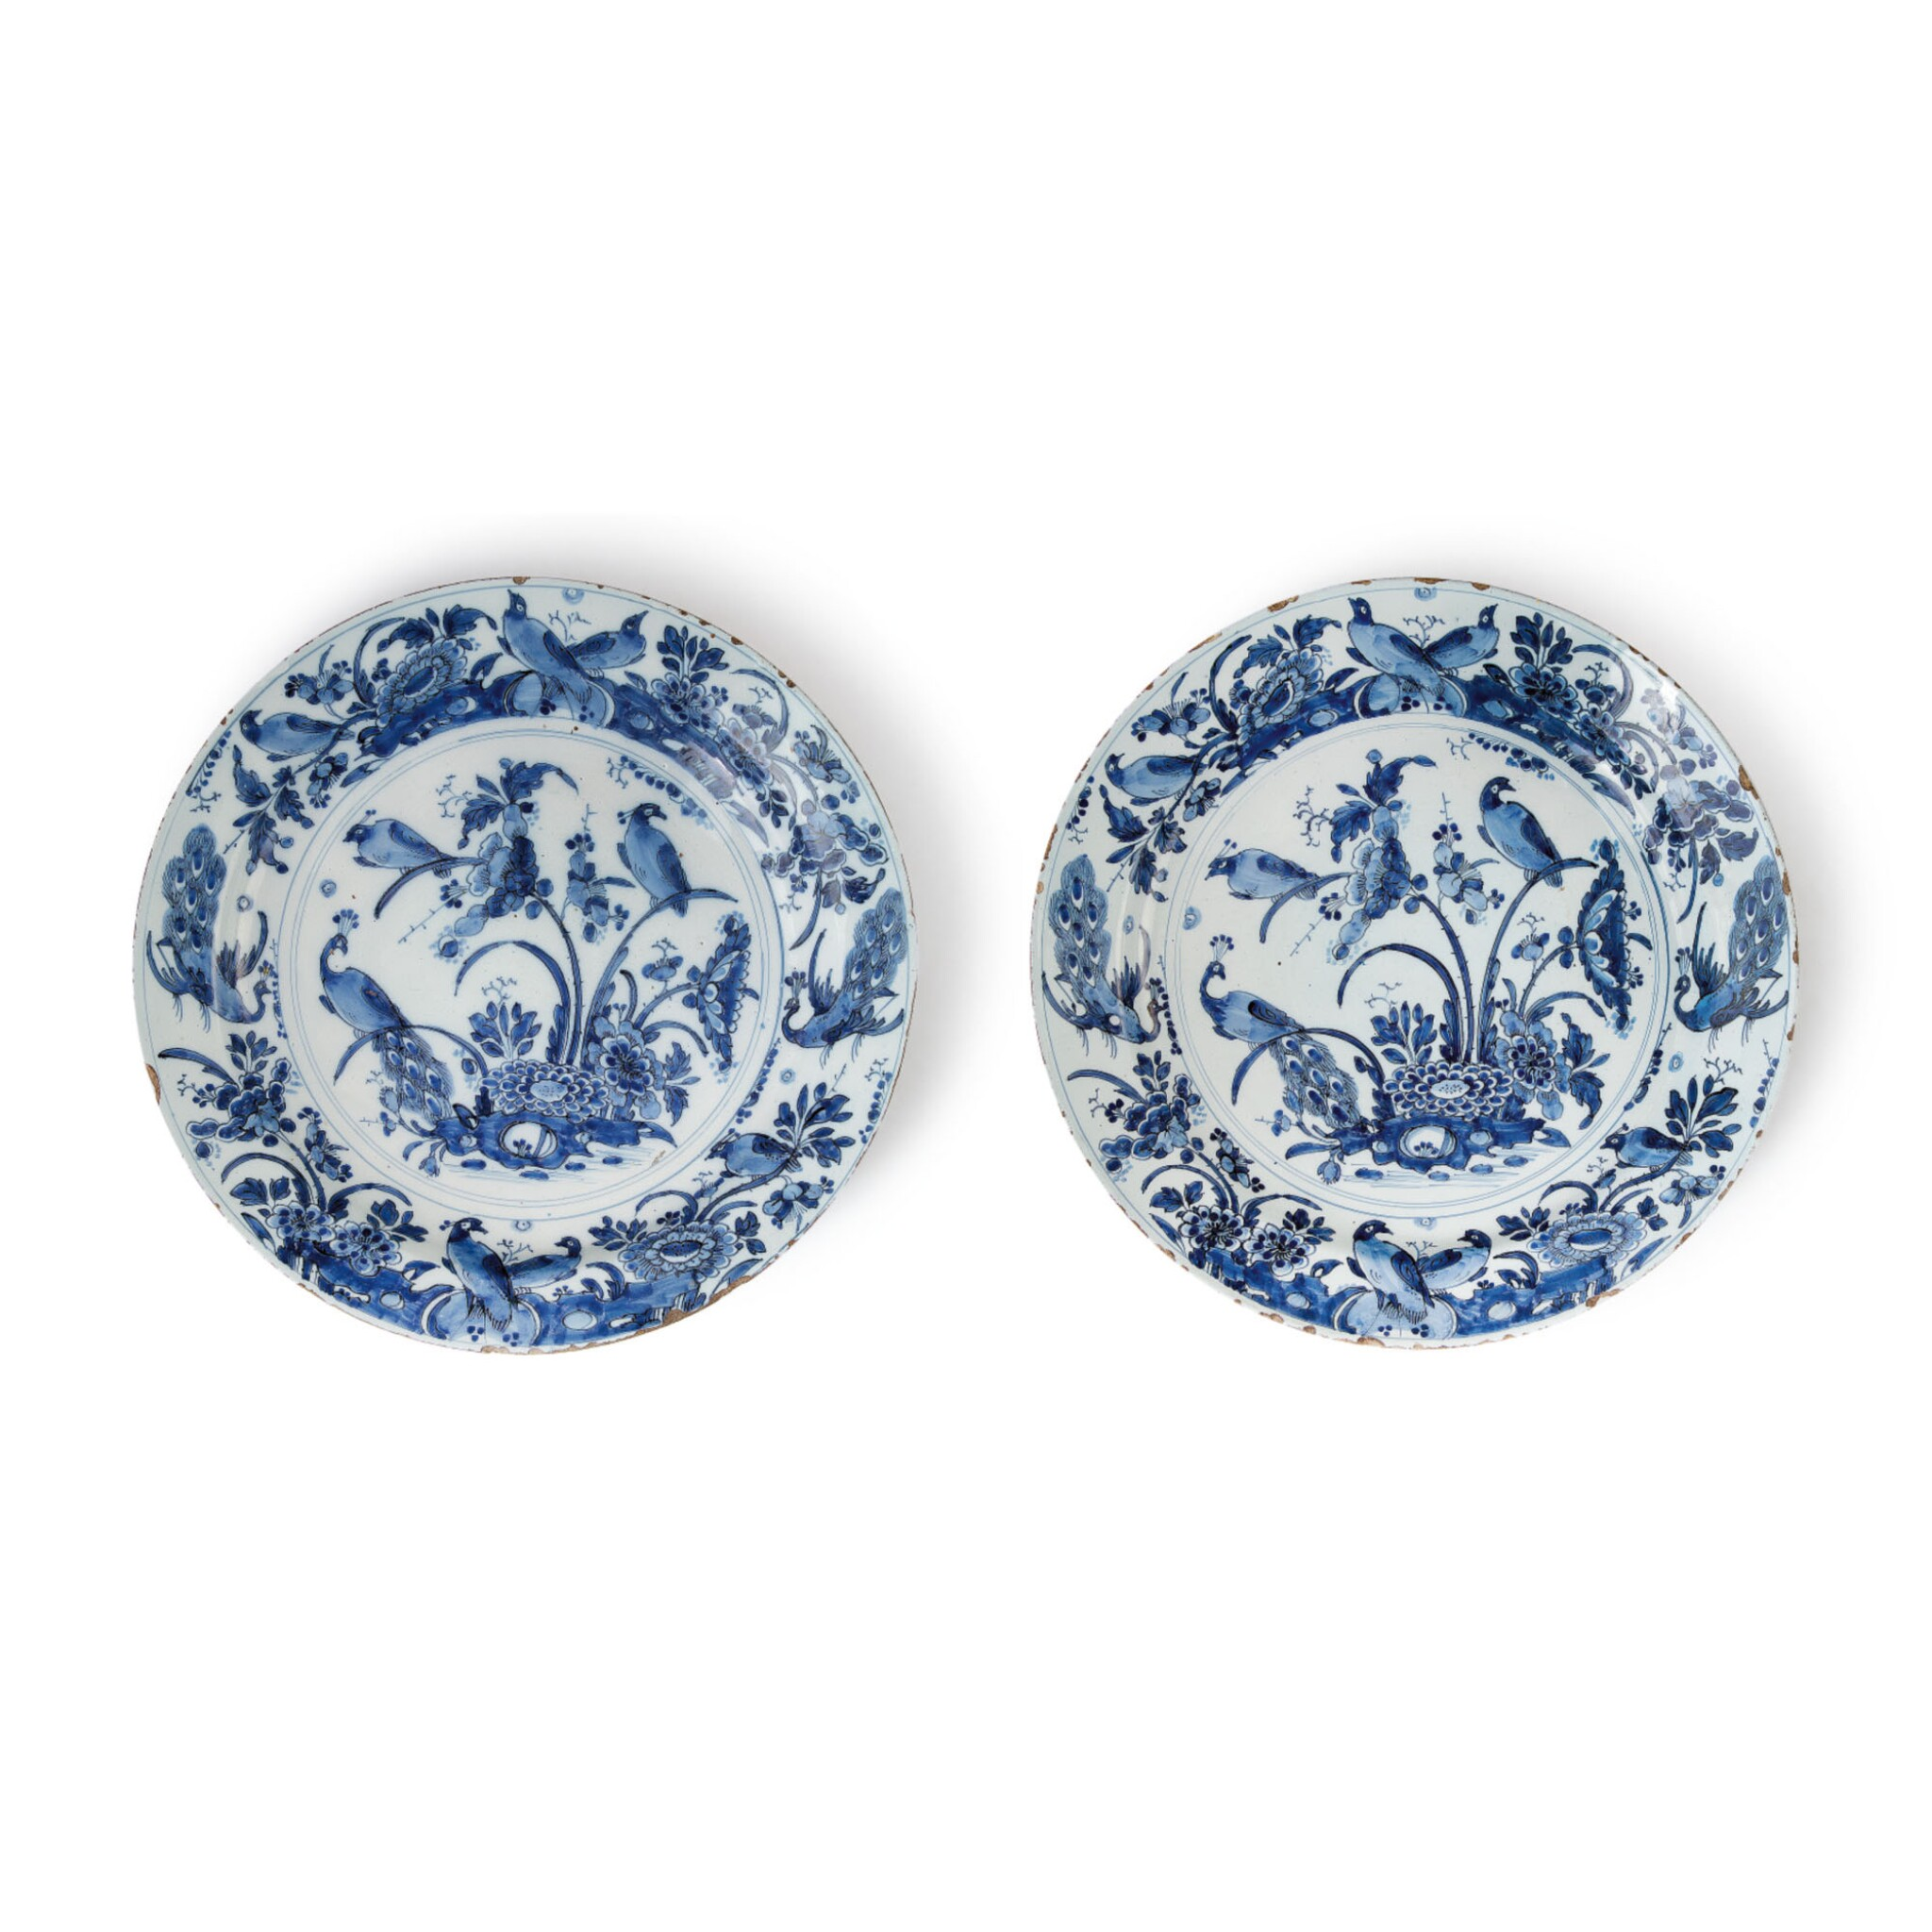 View 1 of Lot 513. A PAIR OF DUTCH DELFT BLUE AND WHITE LARGE CHARGERS, CIRCA 1700.